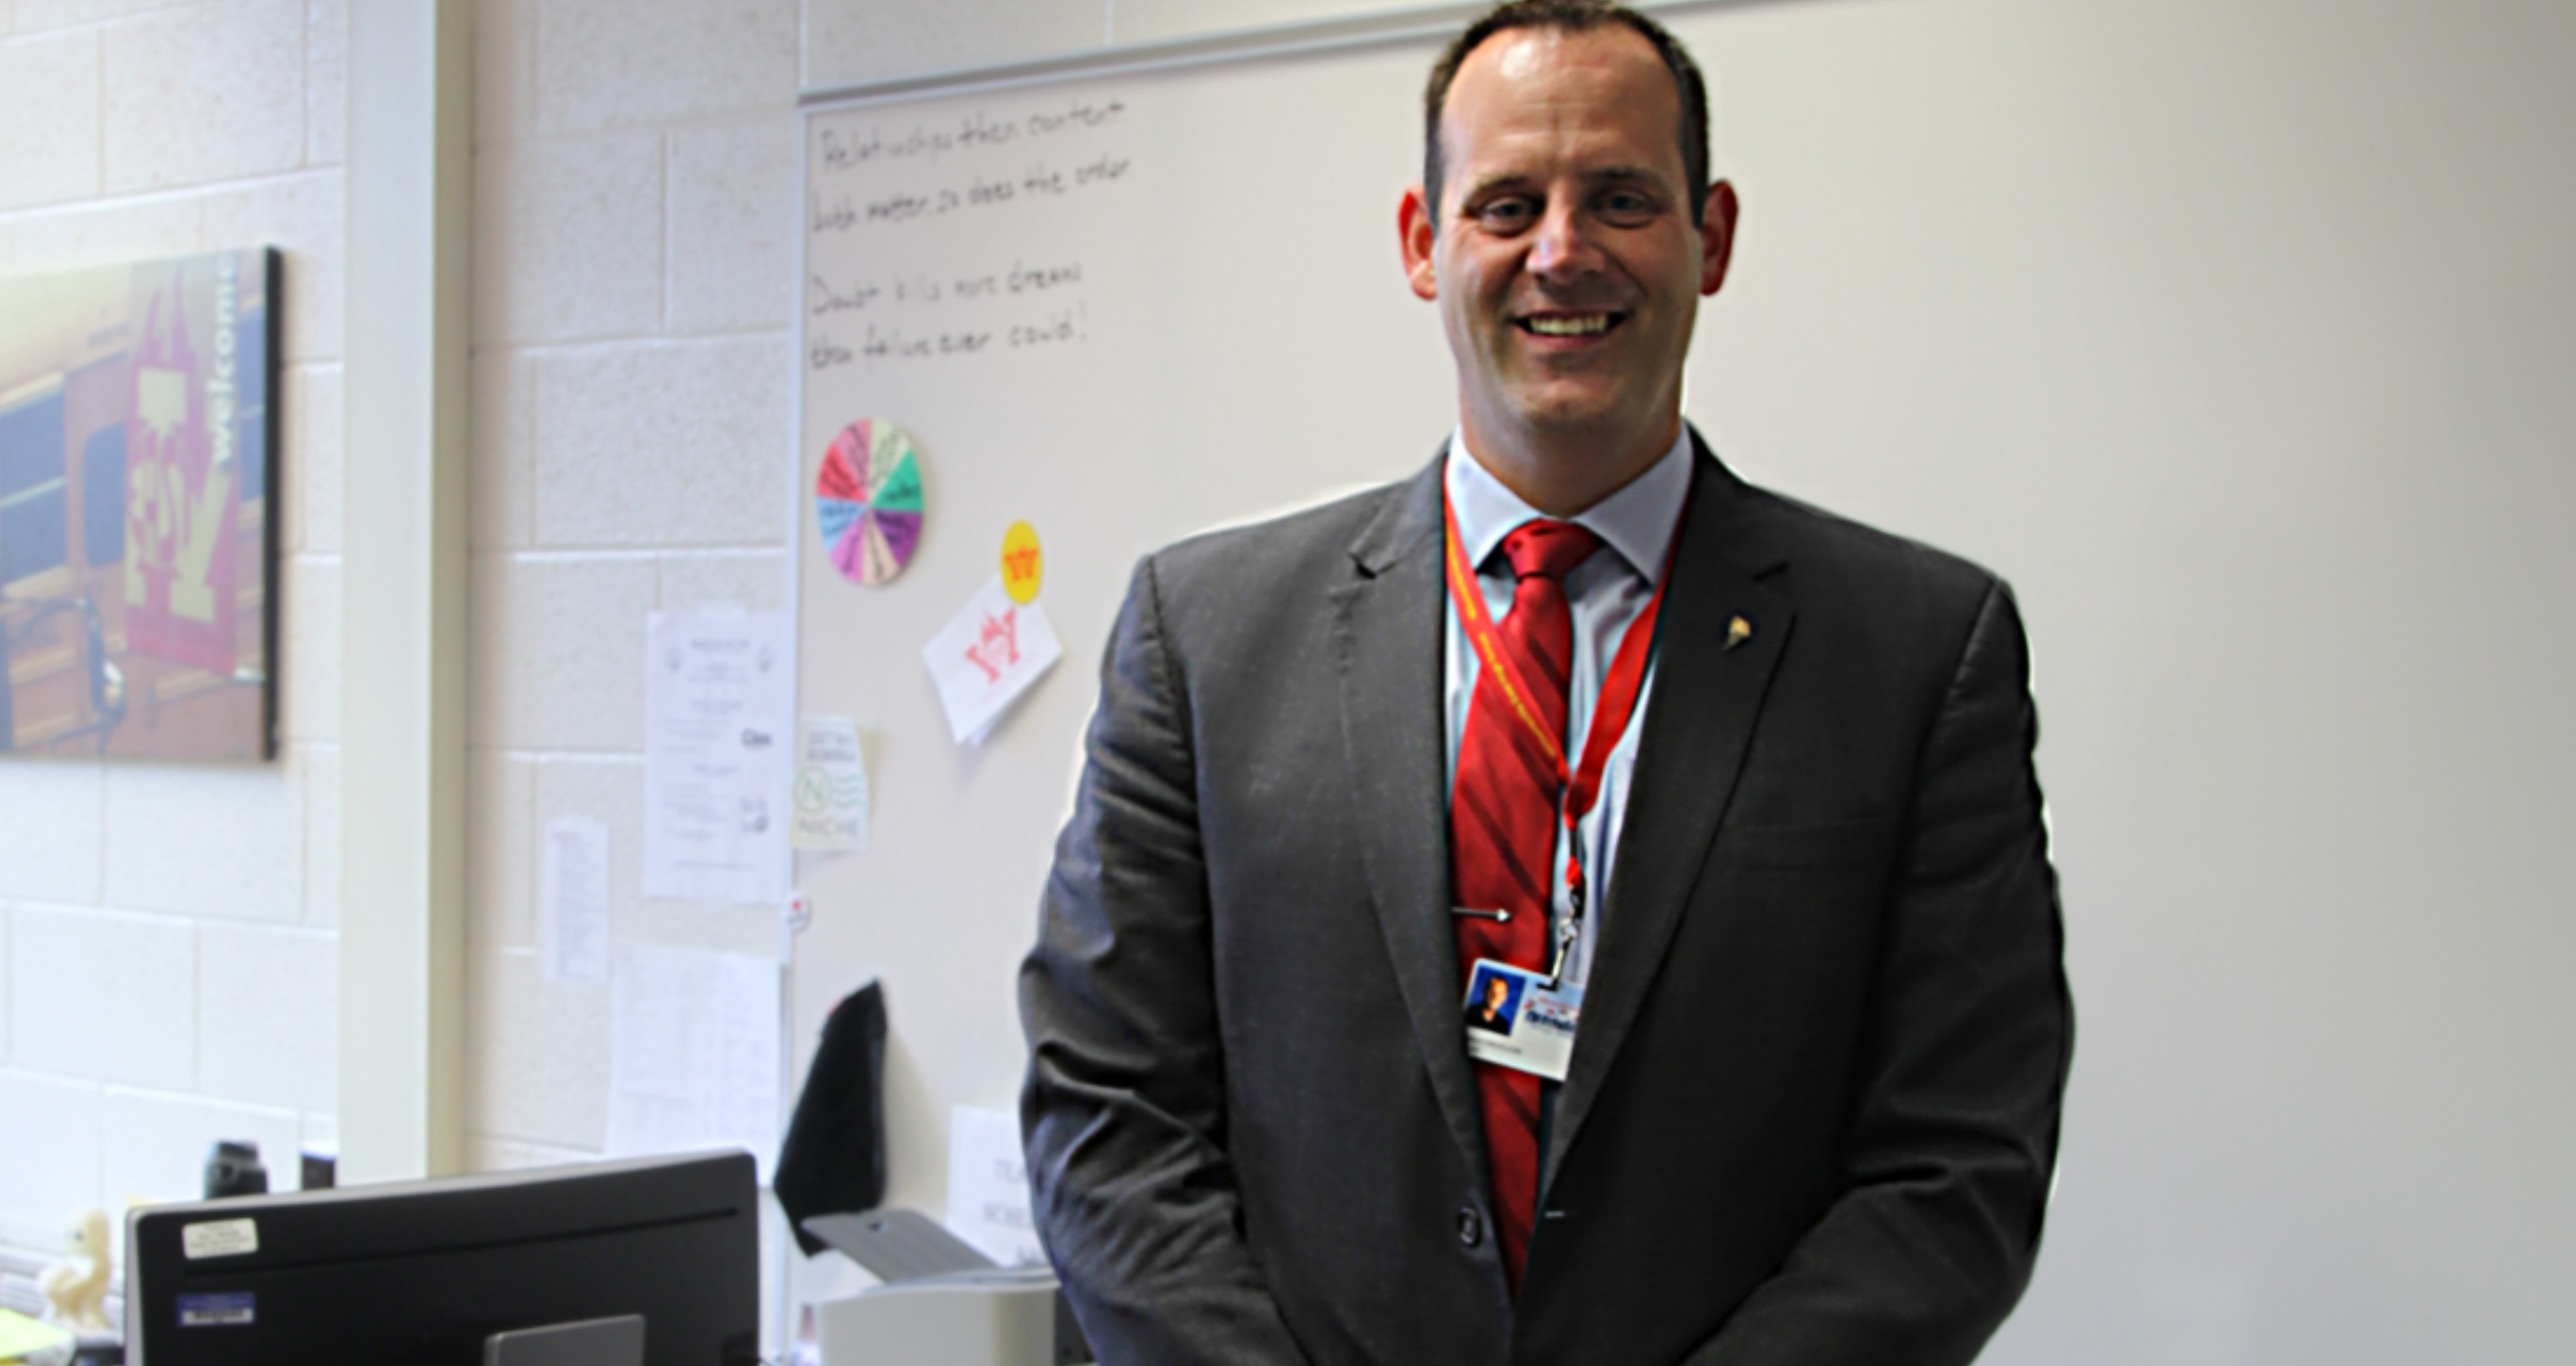 Welcoming Principal Brian Swatland to Williamsville East High School!